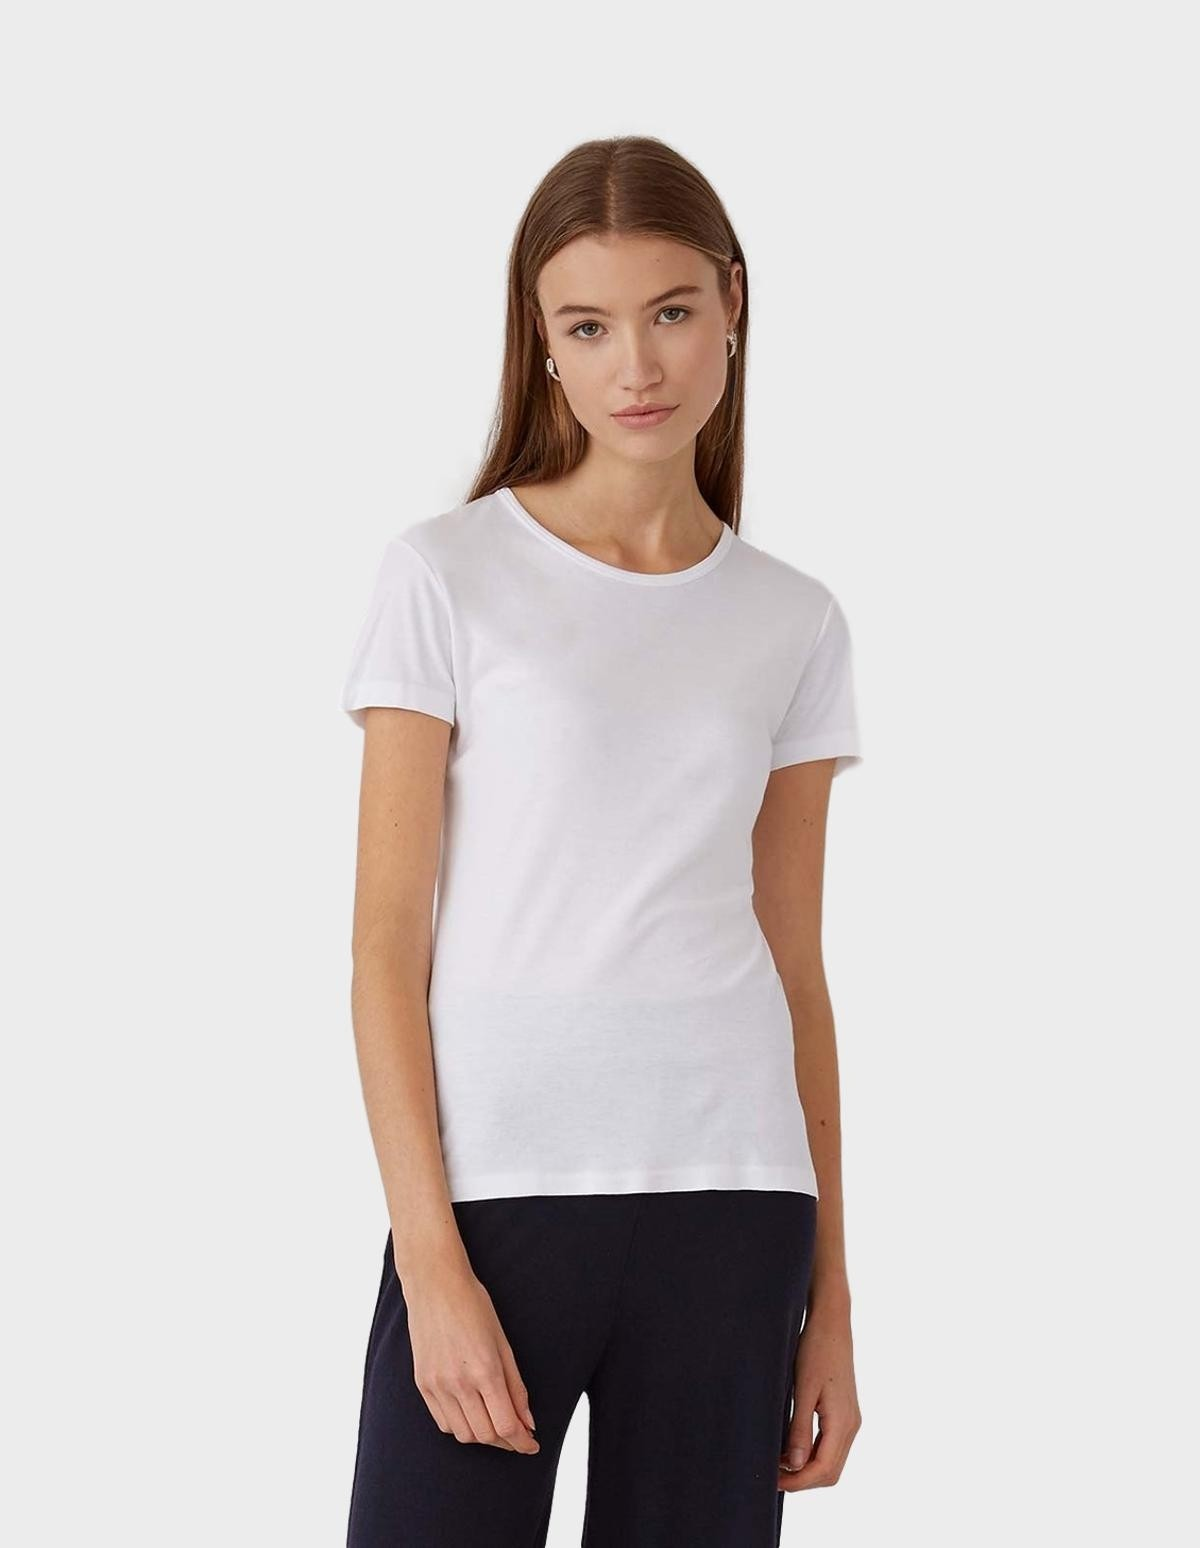 Sunspel Sea Island Cotton T- Shirt in White